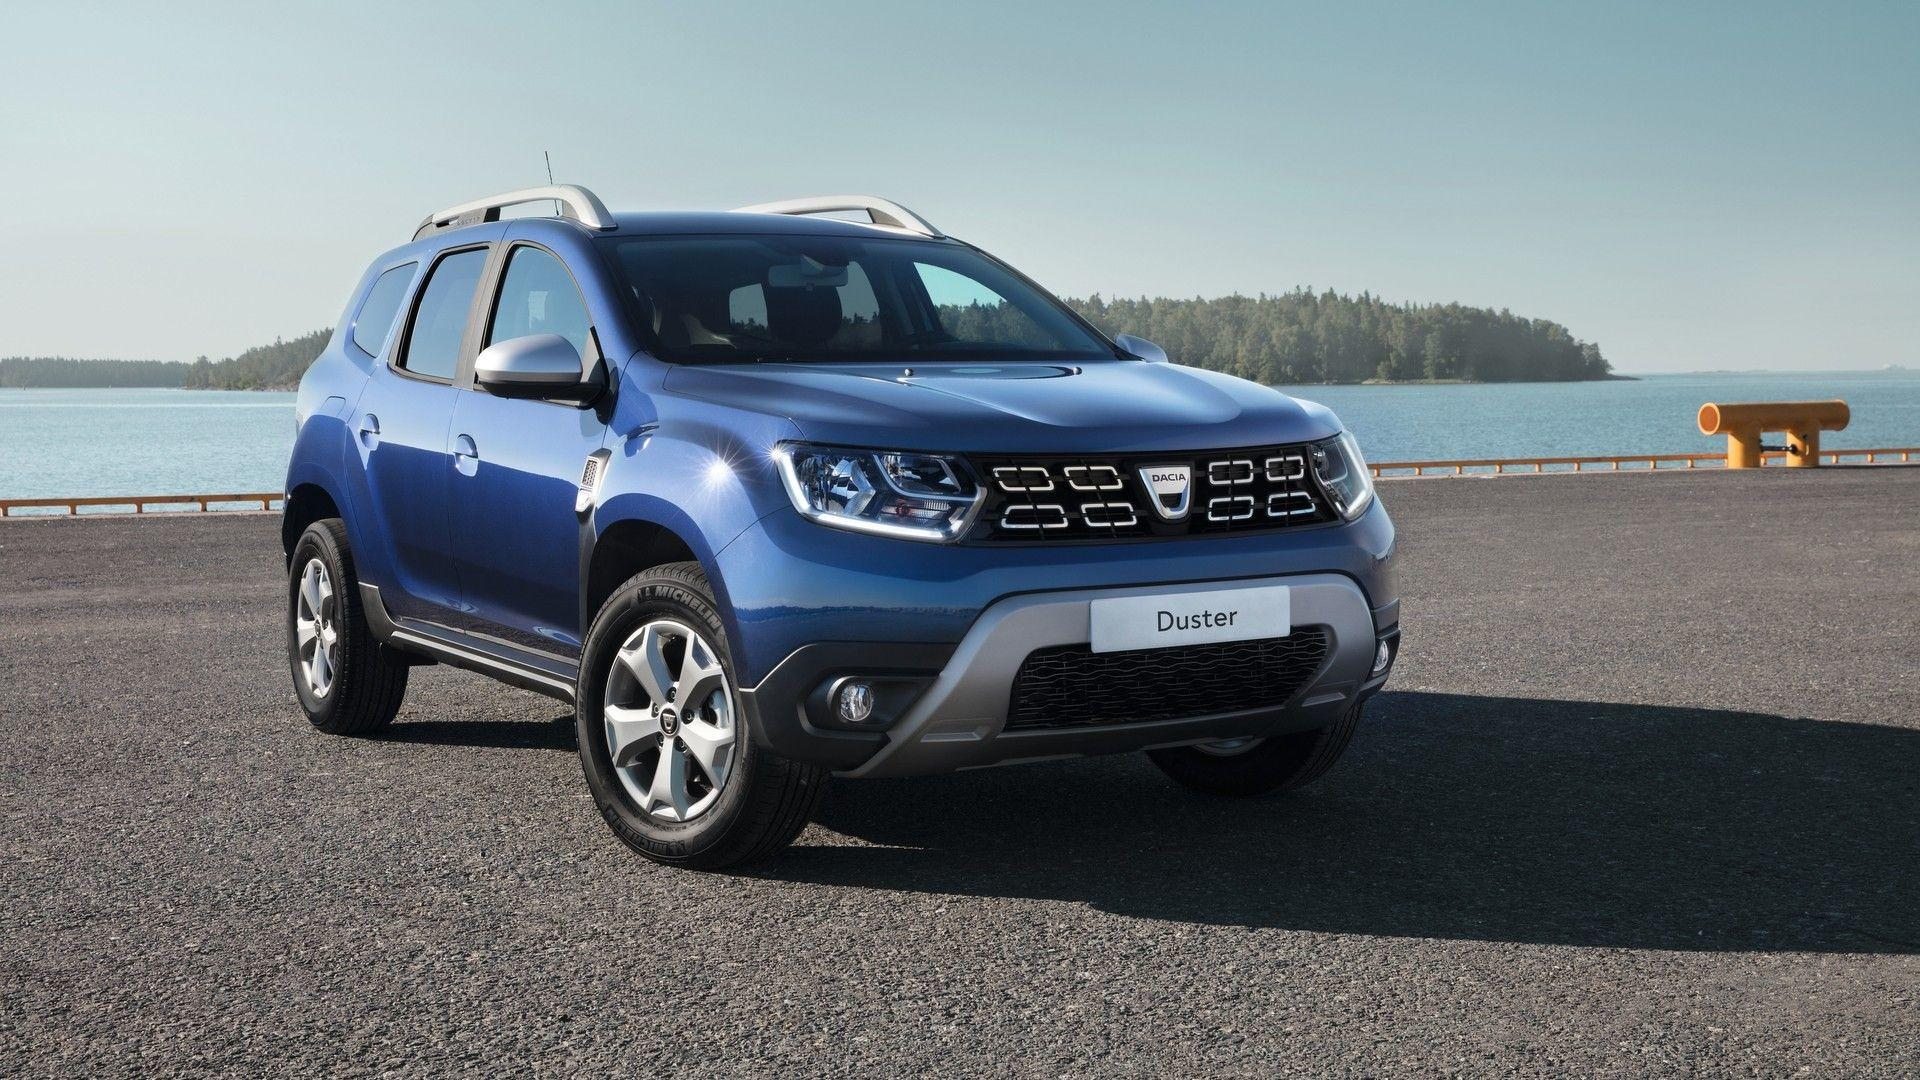 Image result for Renault Duster